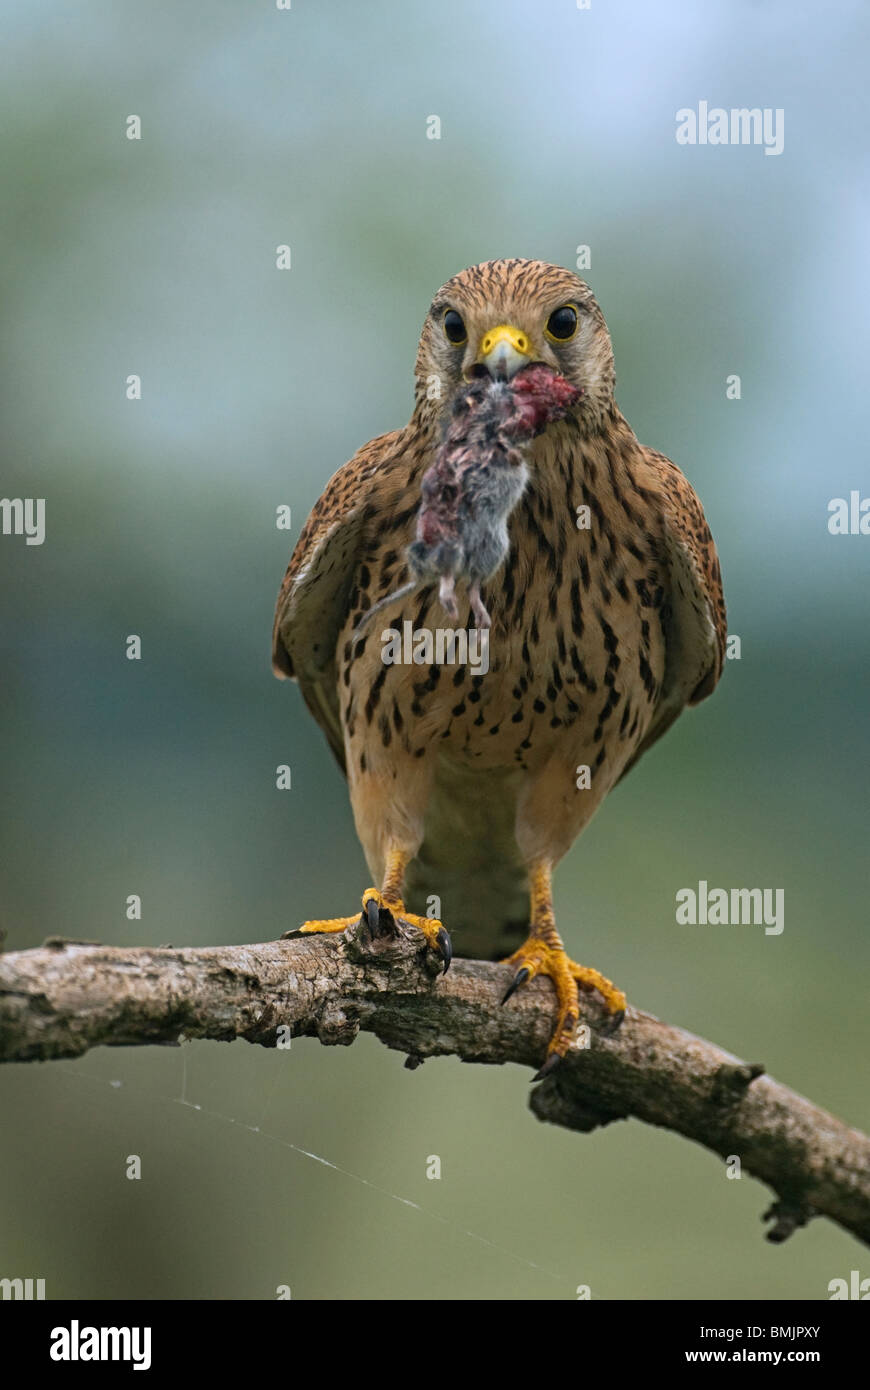 Europe, Hungary, Kestrel holding mousein mouth, close-up Stock Photo